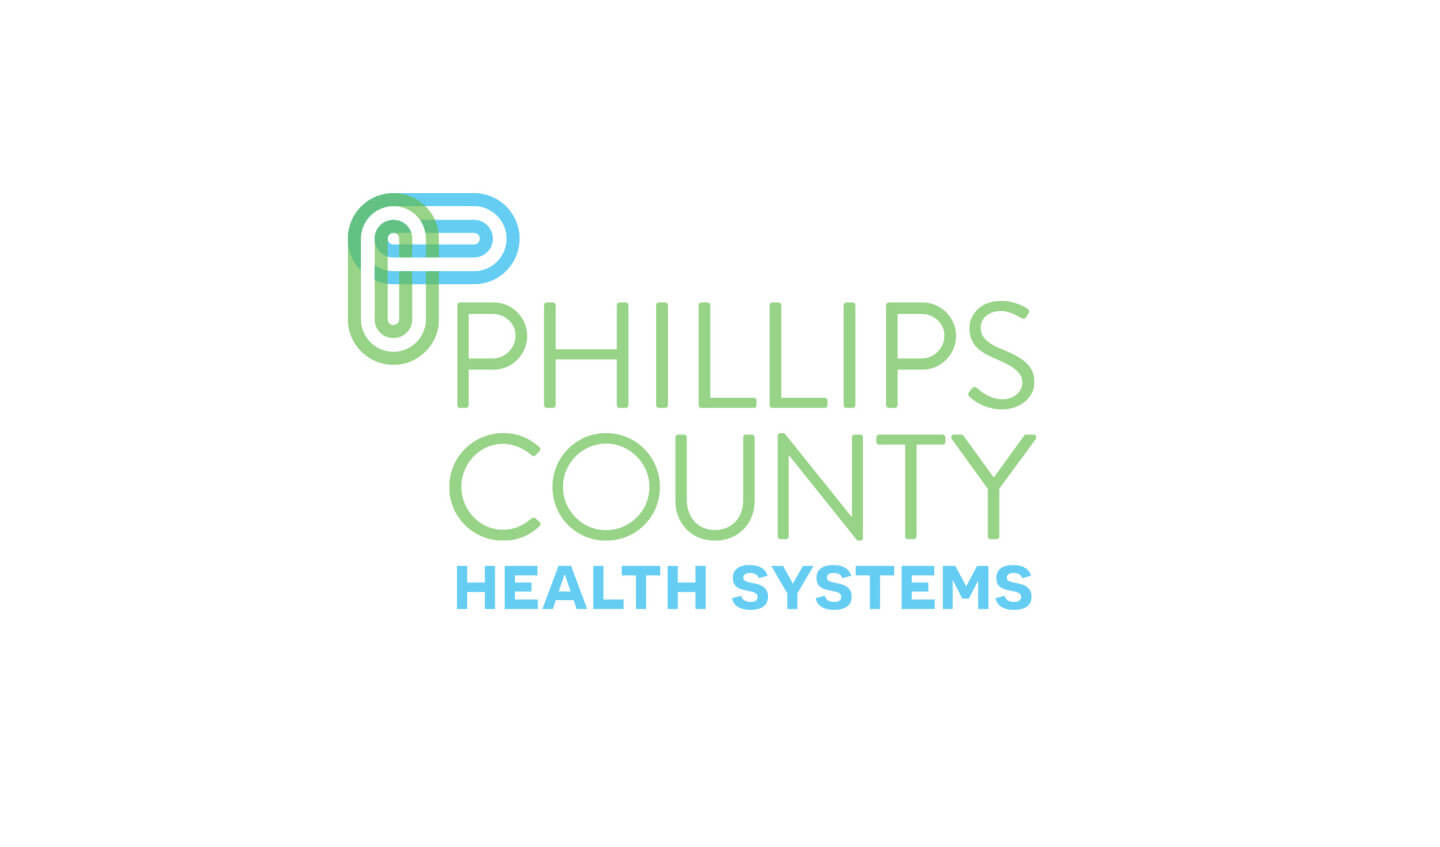 Phillips County Health Systems logo